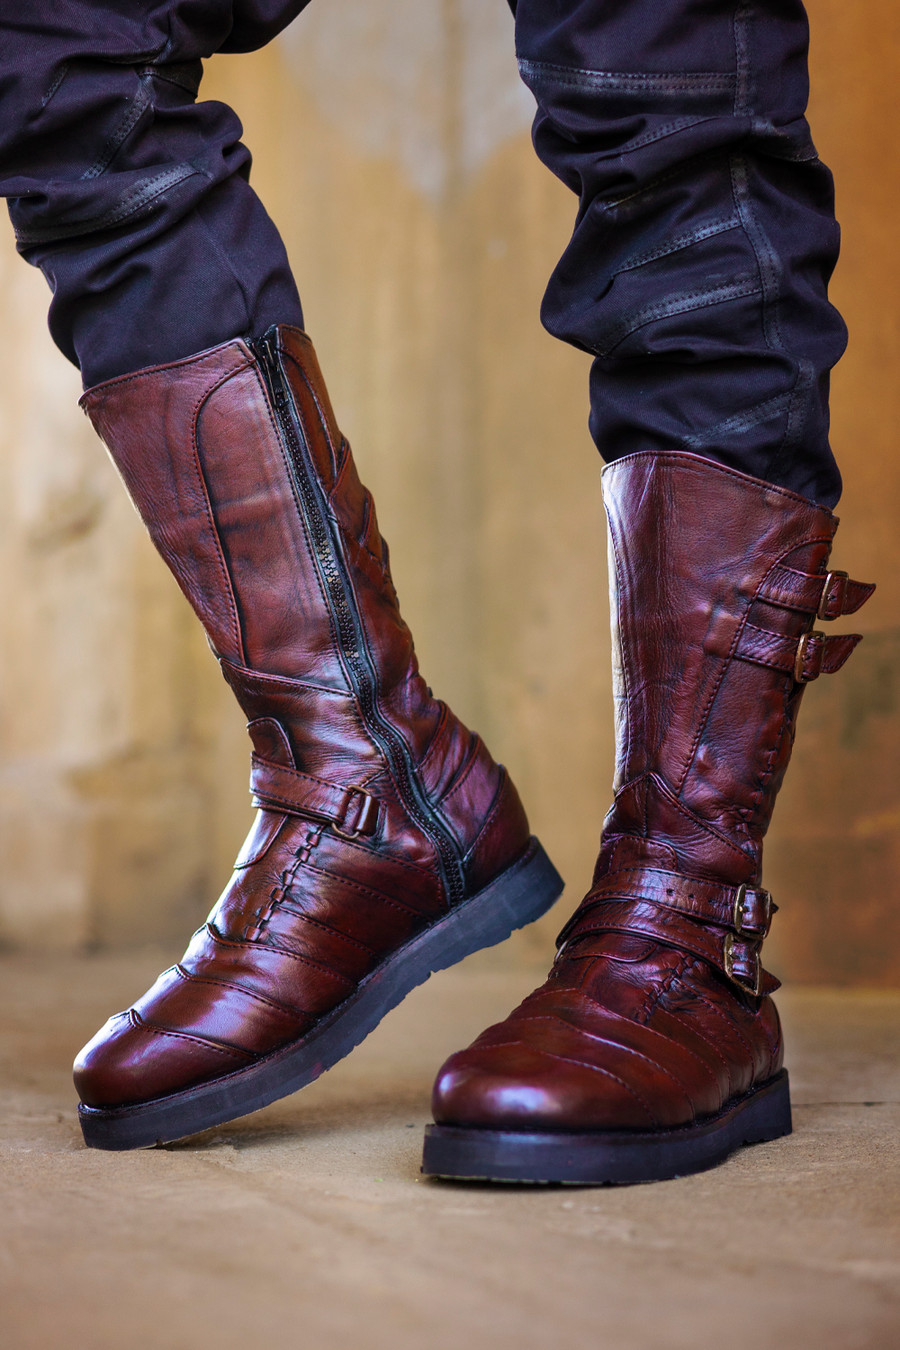 Corsair Moto Boots (with Hidden Pockets) - Giant's Blood